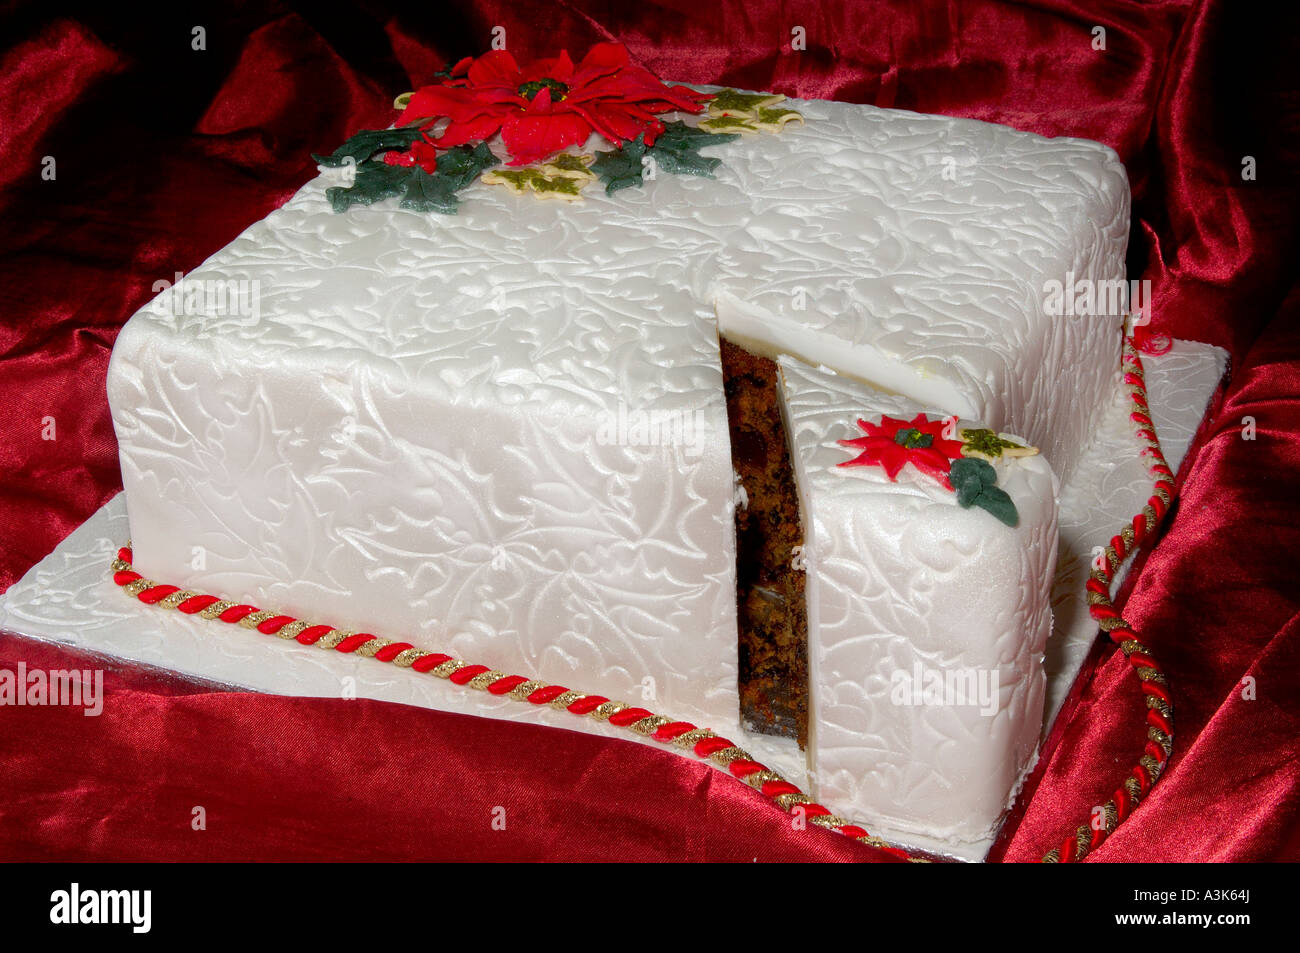 Beautifully decorated iced Christmas fruit cake with embossed holly ...